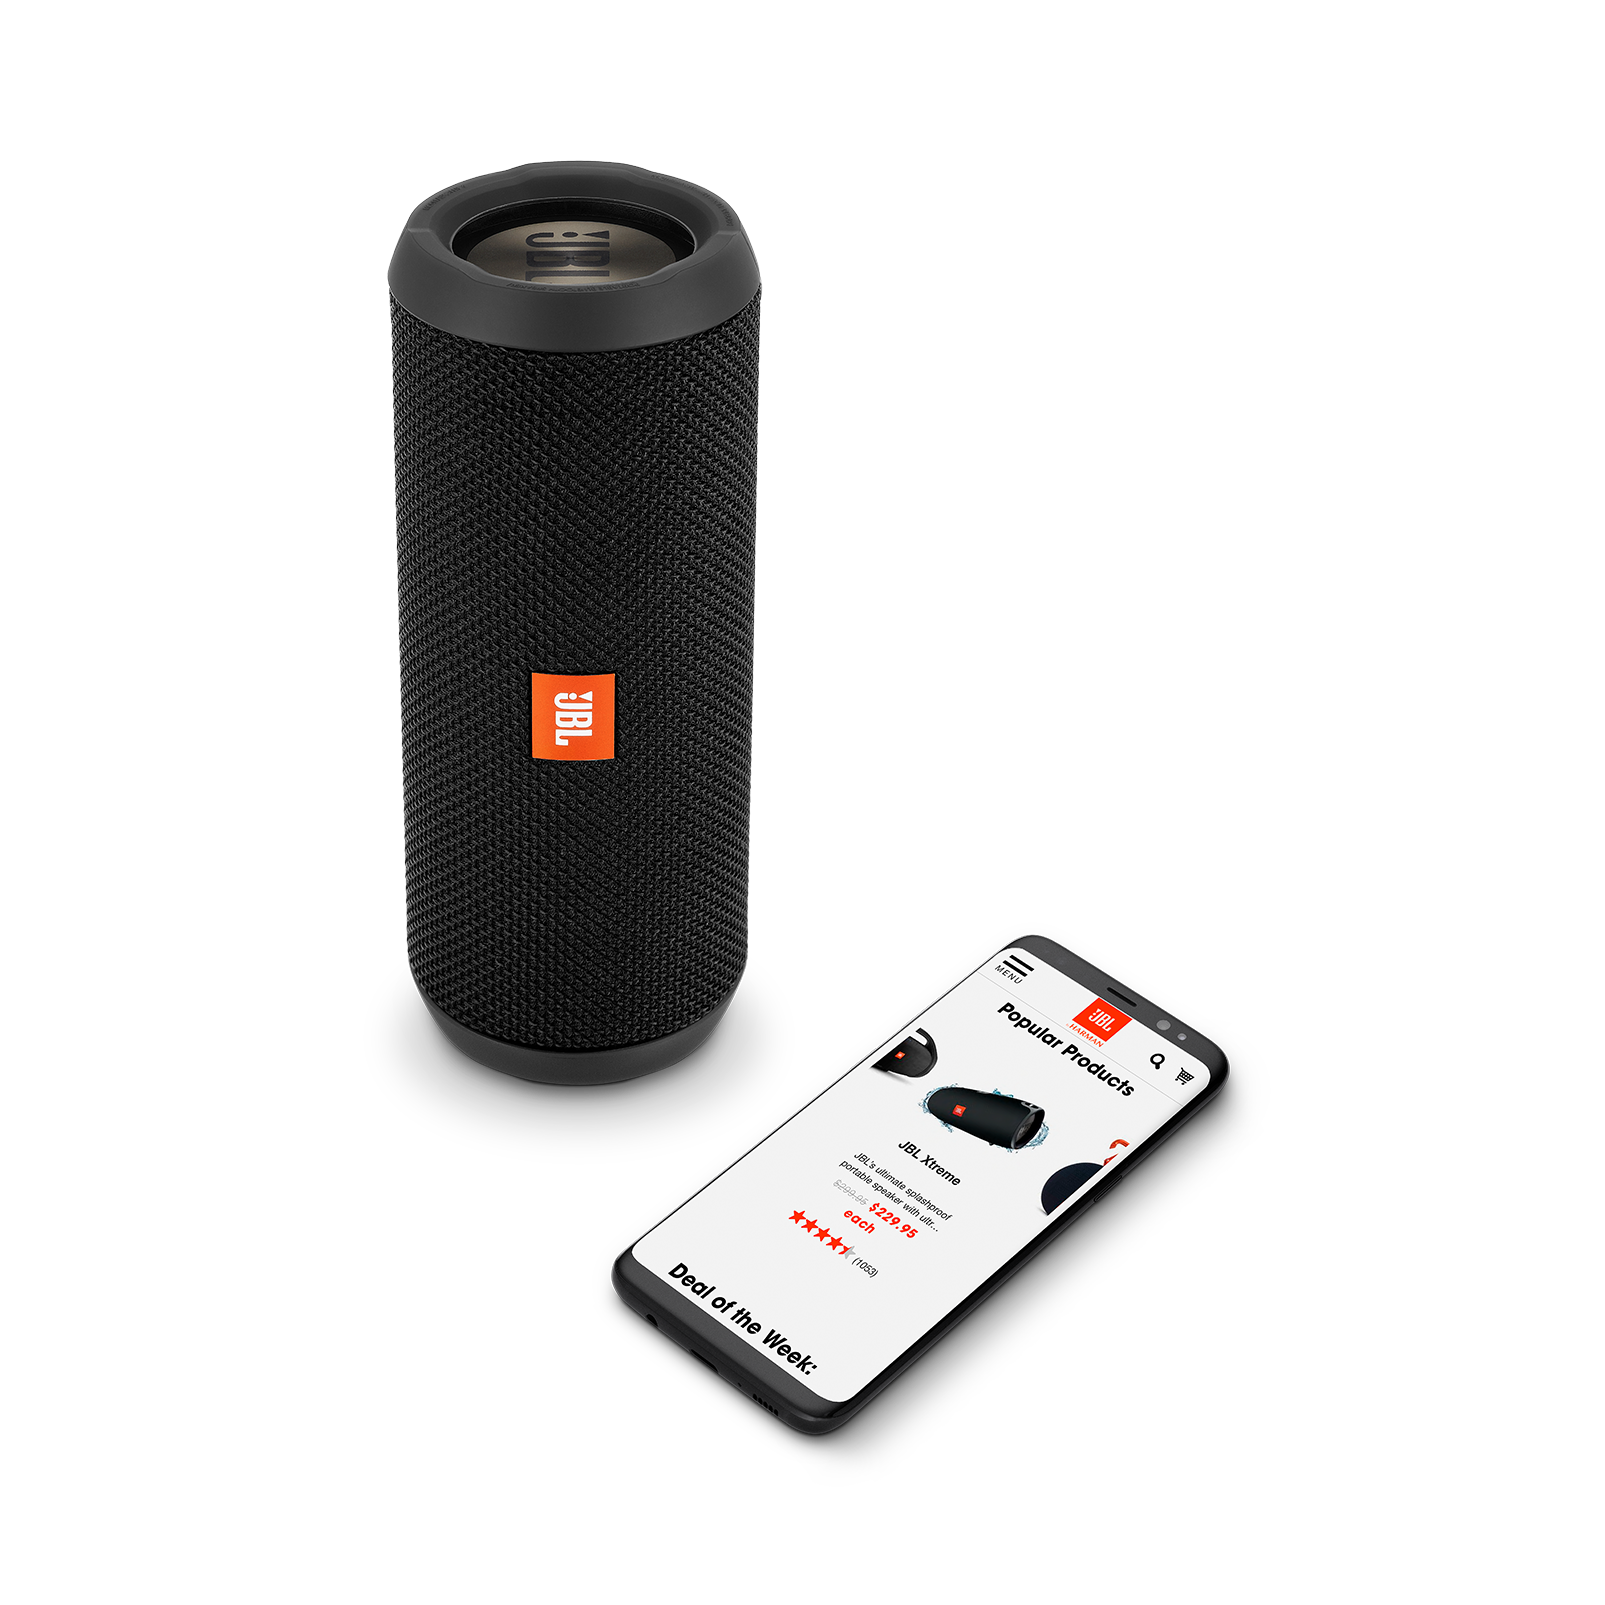 JBL Flip 3 Stealth Edition - Black - Portable Bluetooth® speaker - Detailshot 2